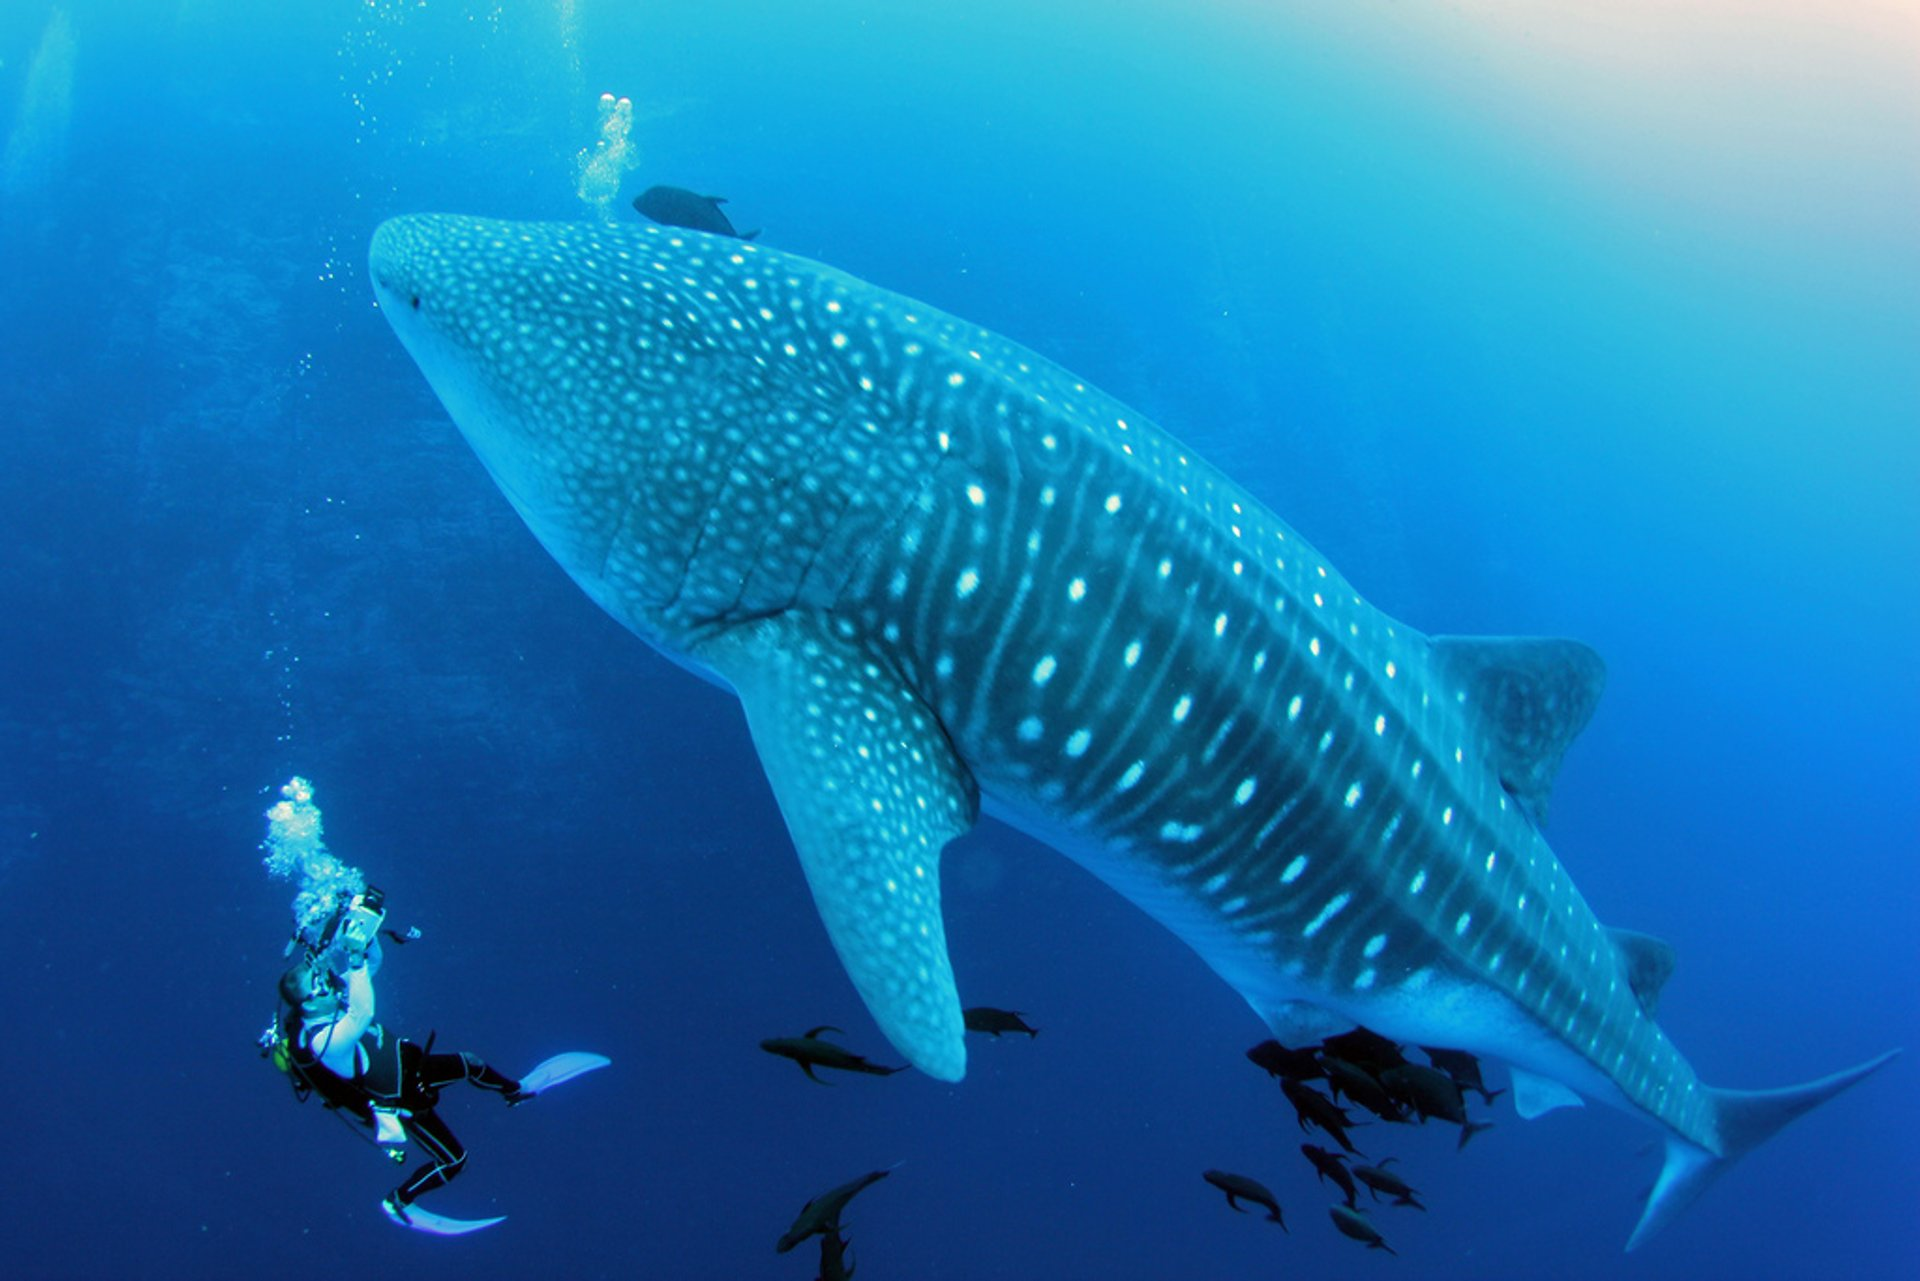 Swimming with Whale Sharks in Mexico 2020 - Best Time